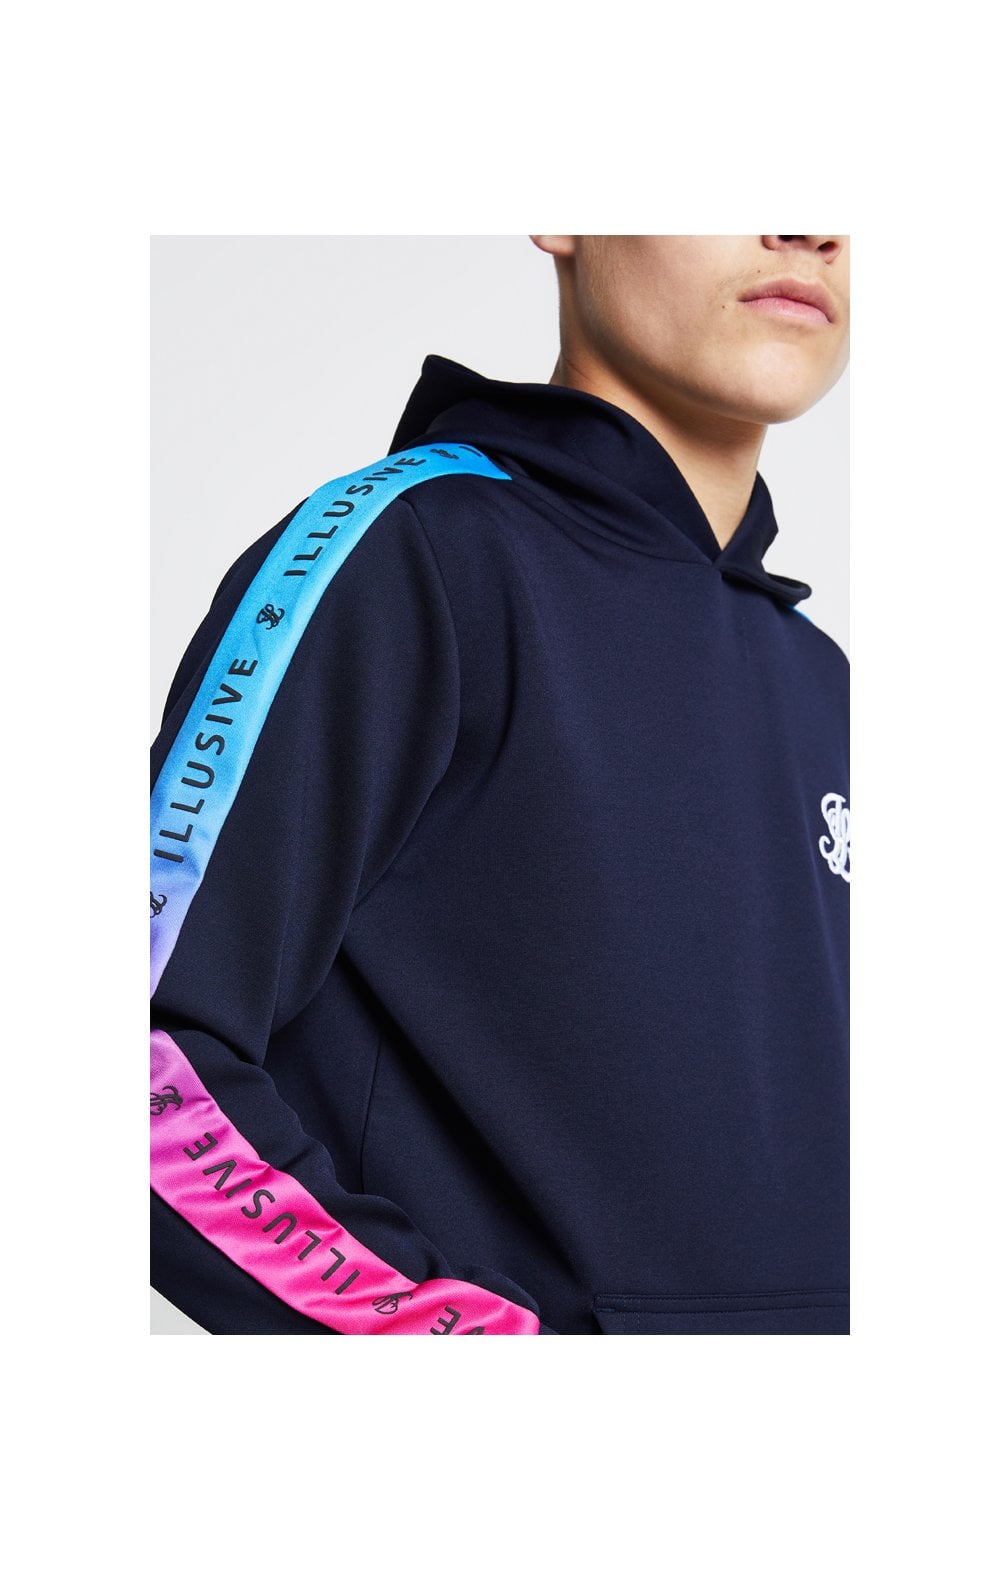 Illusive London Fade Panel Overhead Hoodie - Navy Blue & Pink Kids Top Sizes: 11-12 YRS